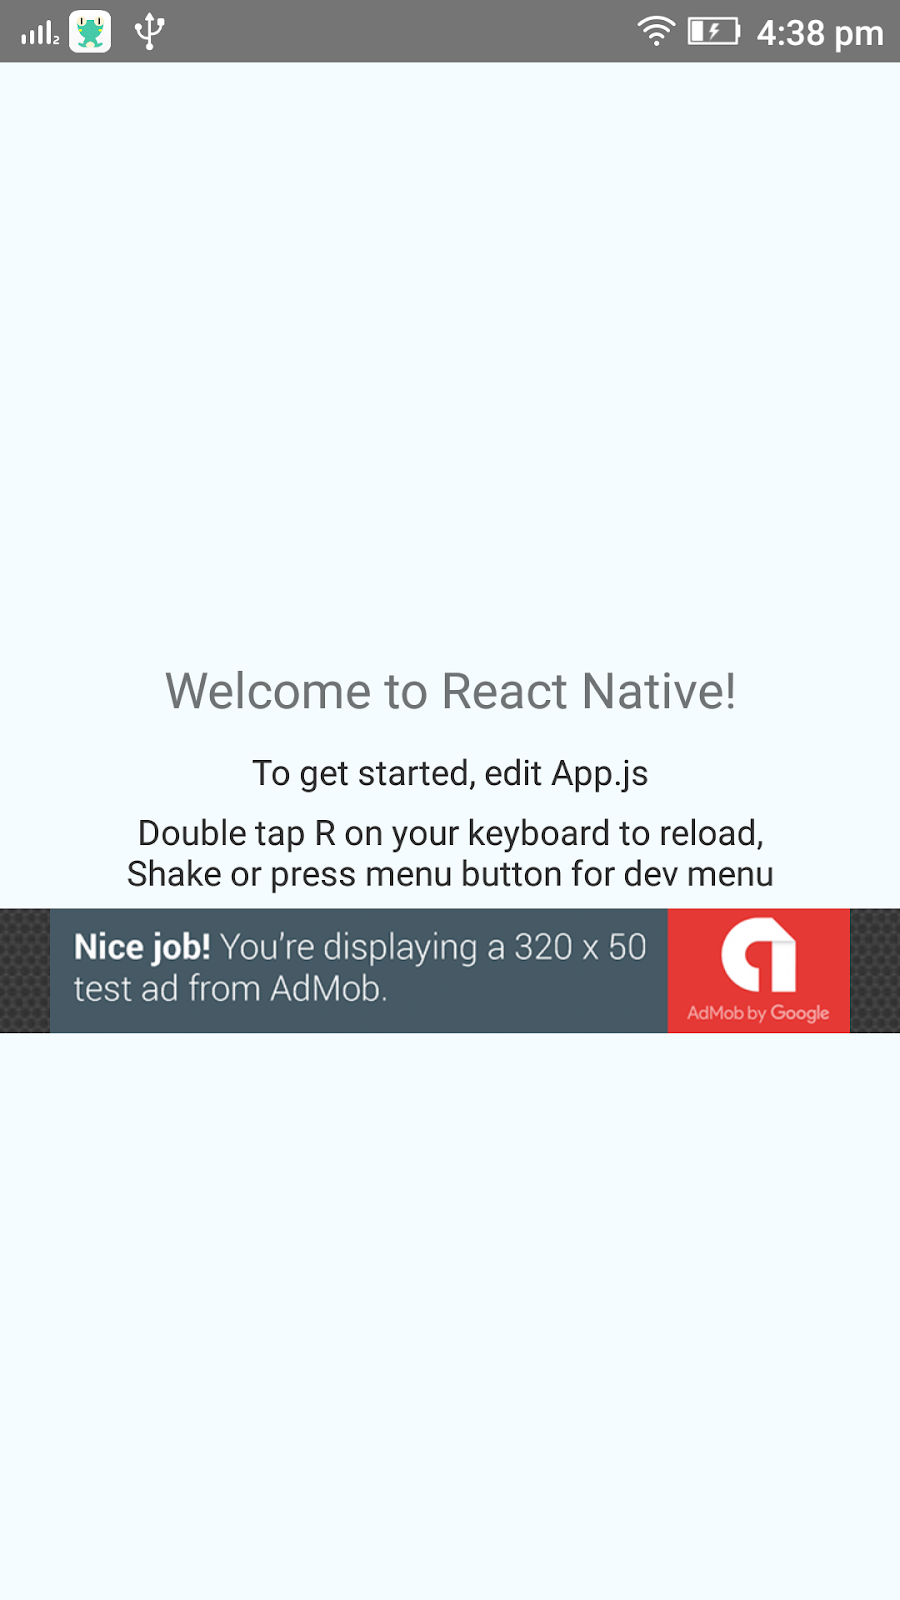 How to Create React Native App with Admob for Android